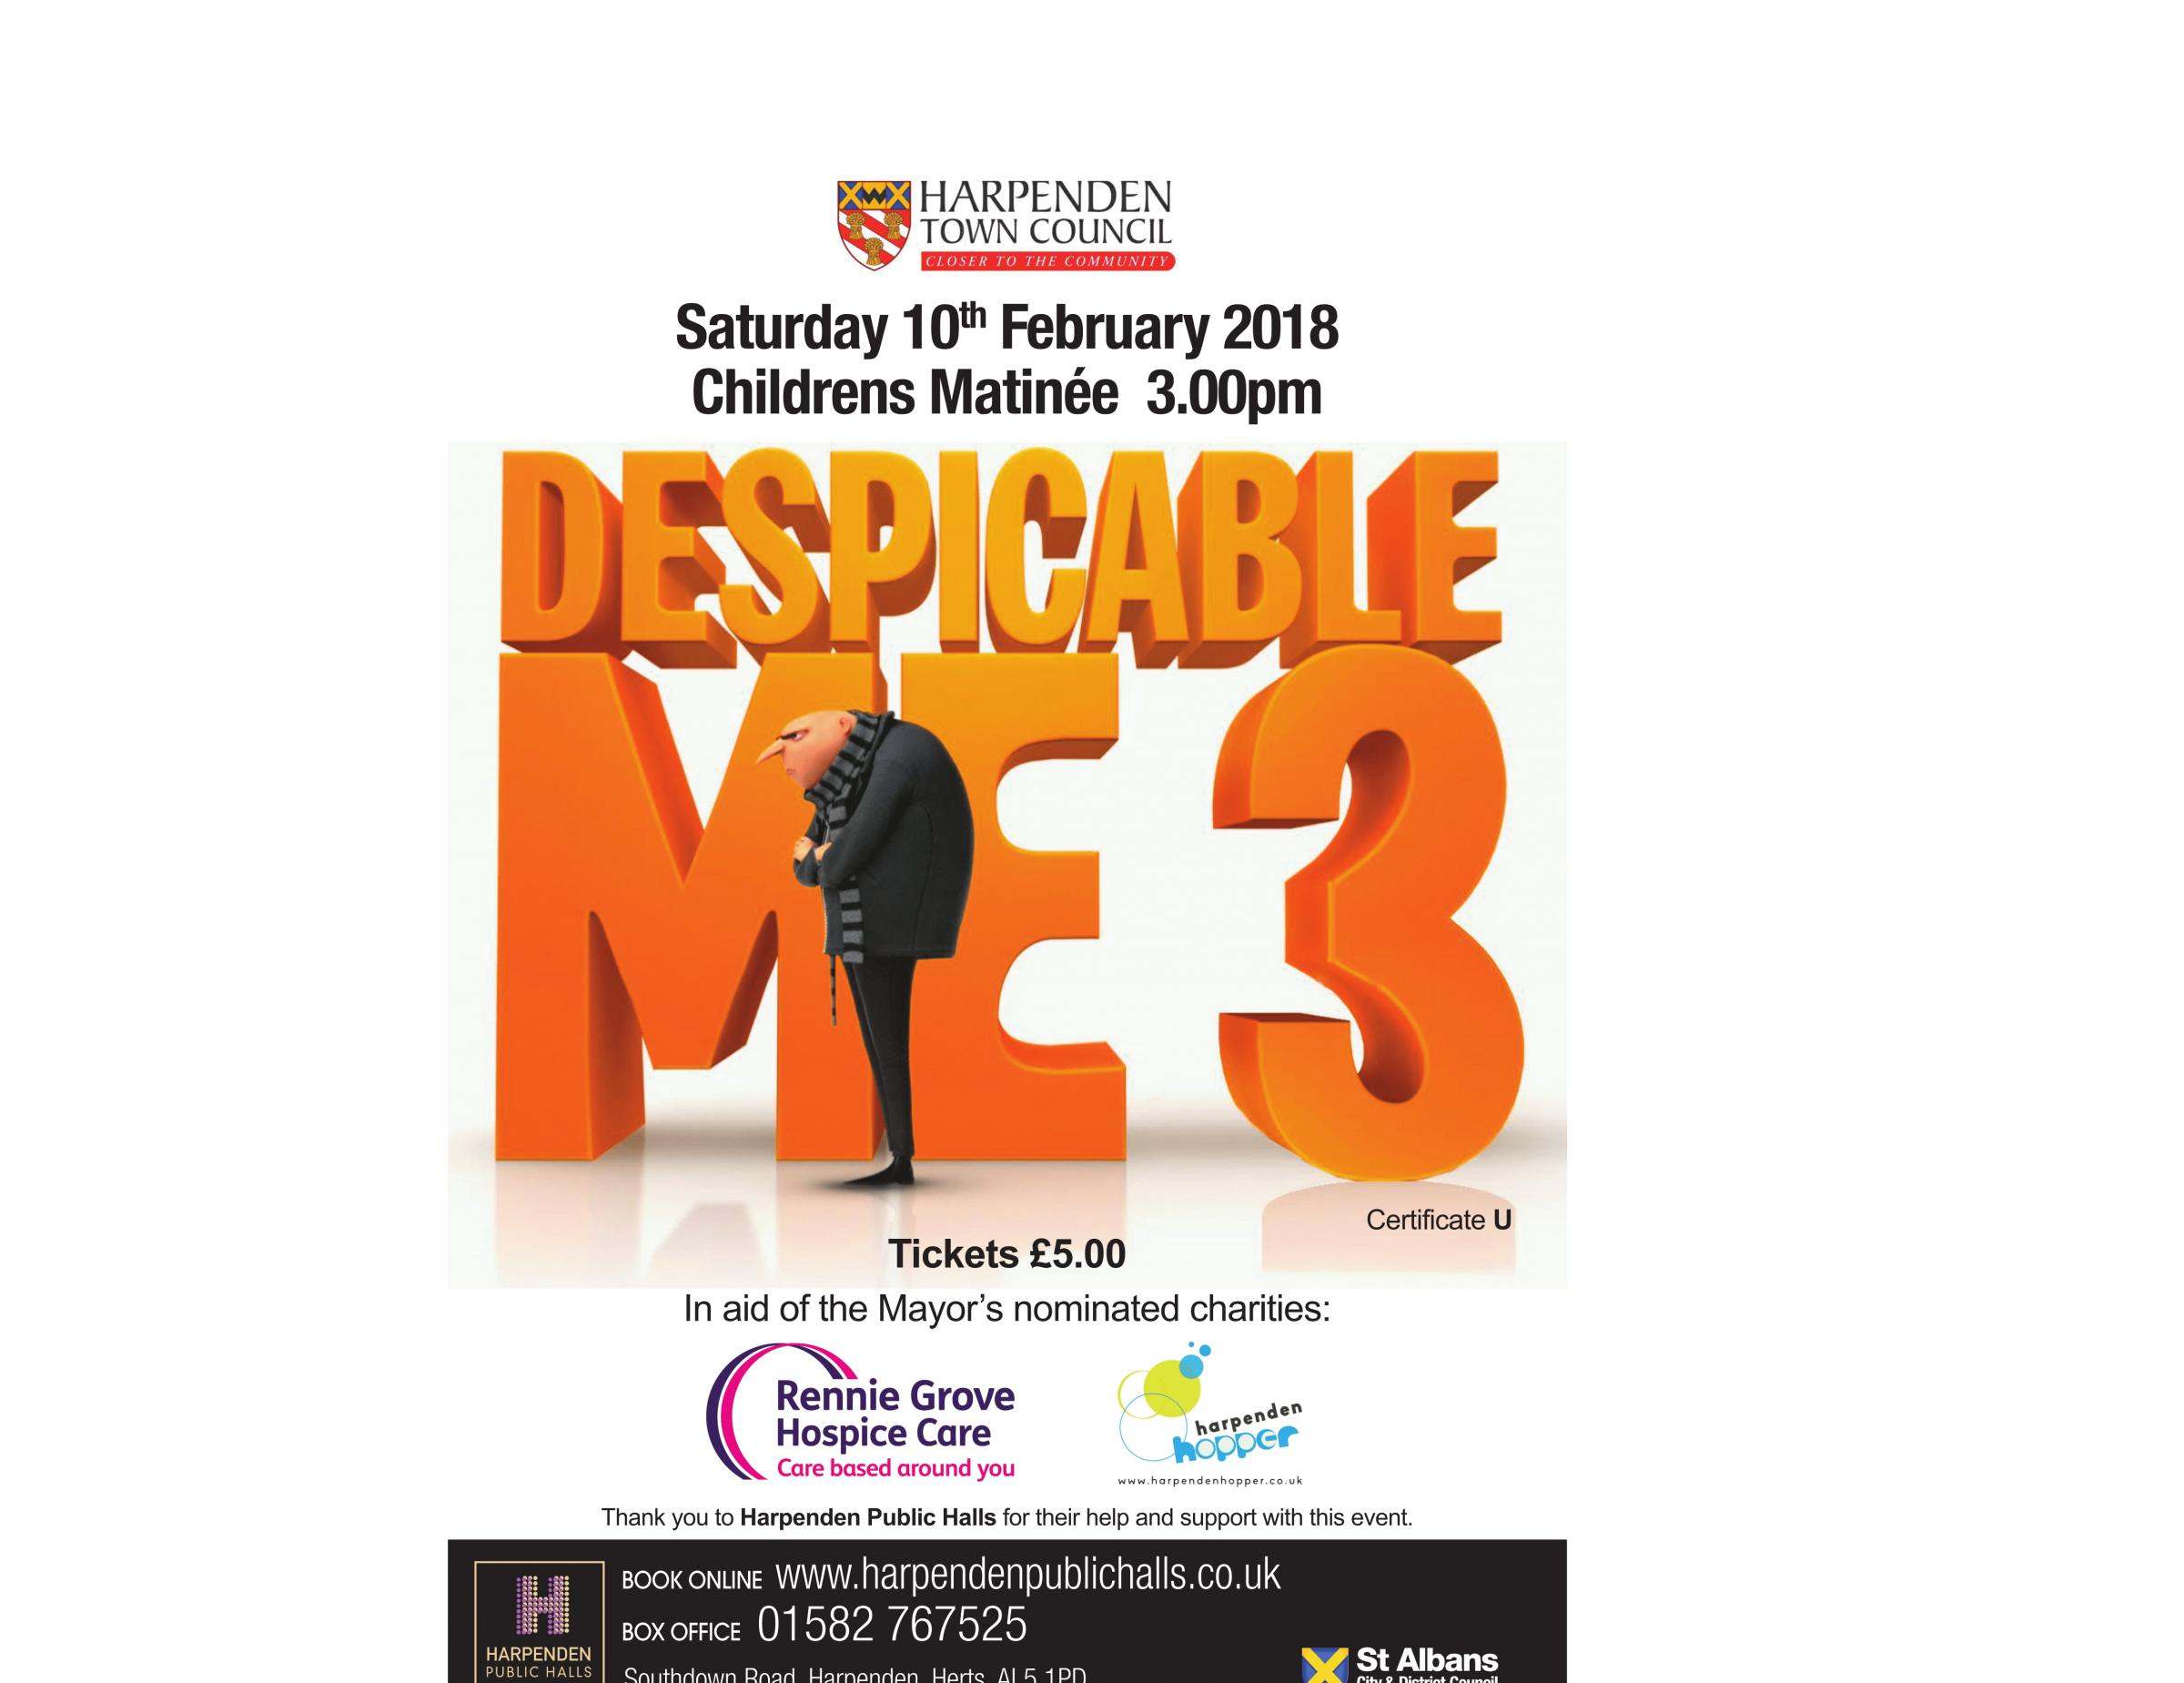 Despicable Me 3 - Harpenden Mayor's Charity Matinee